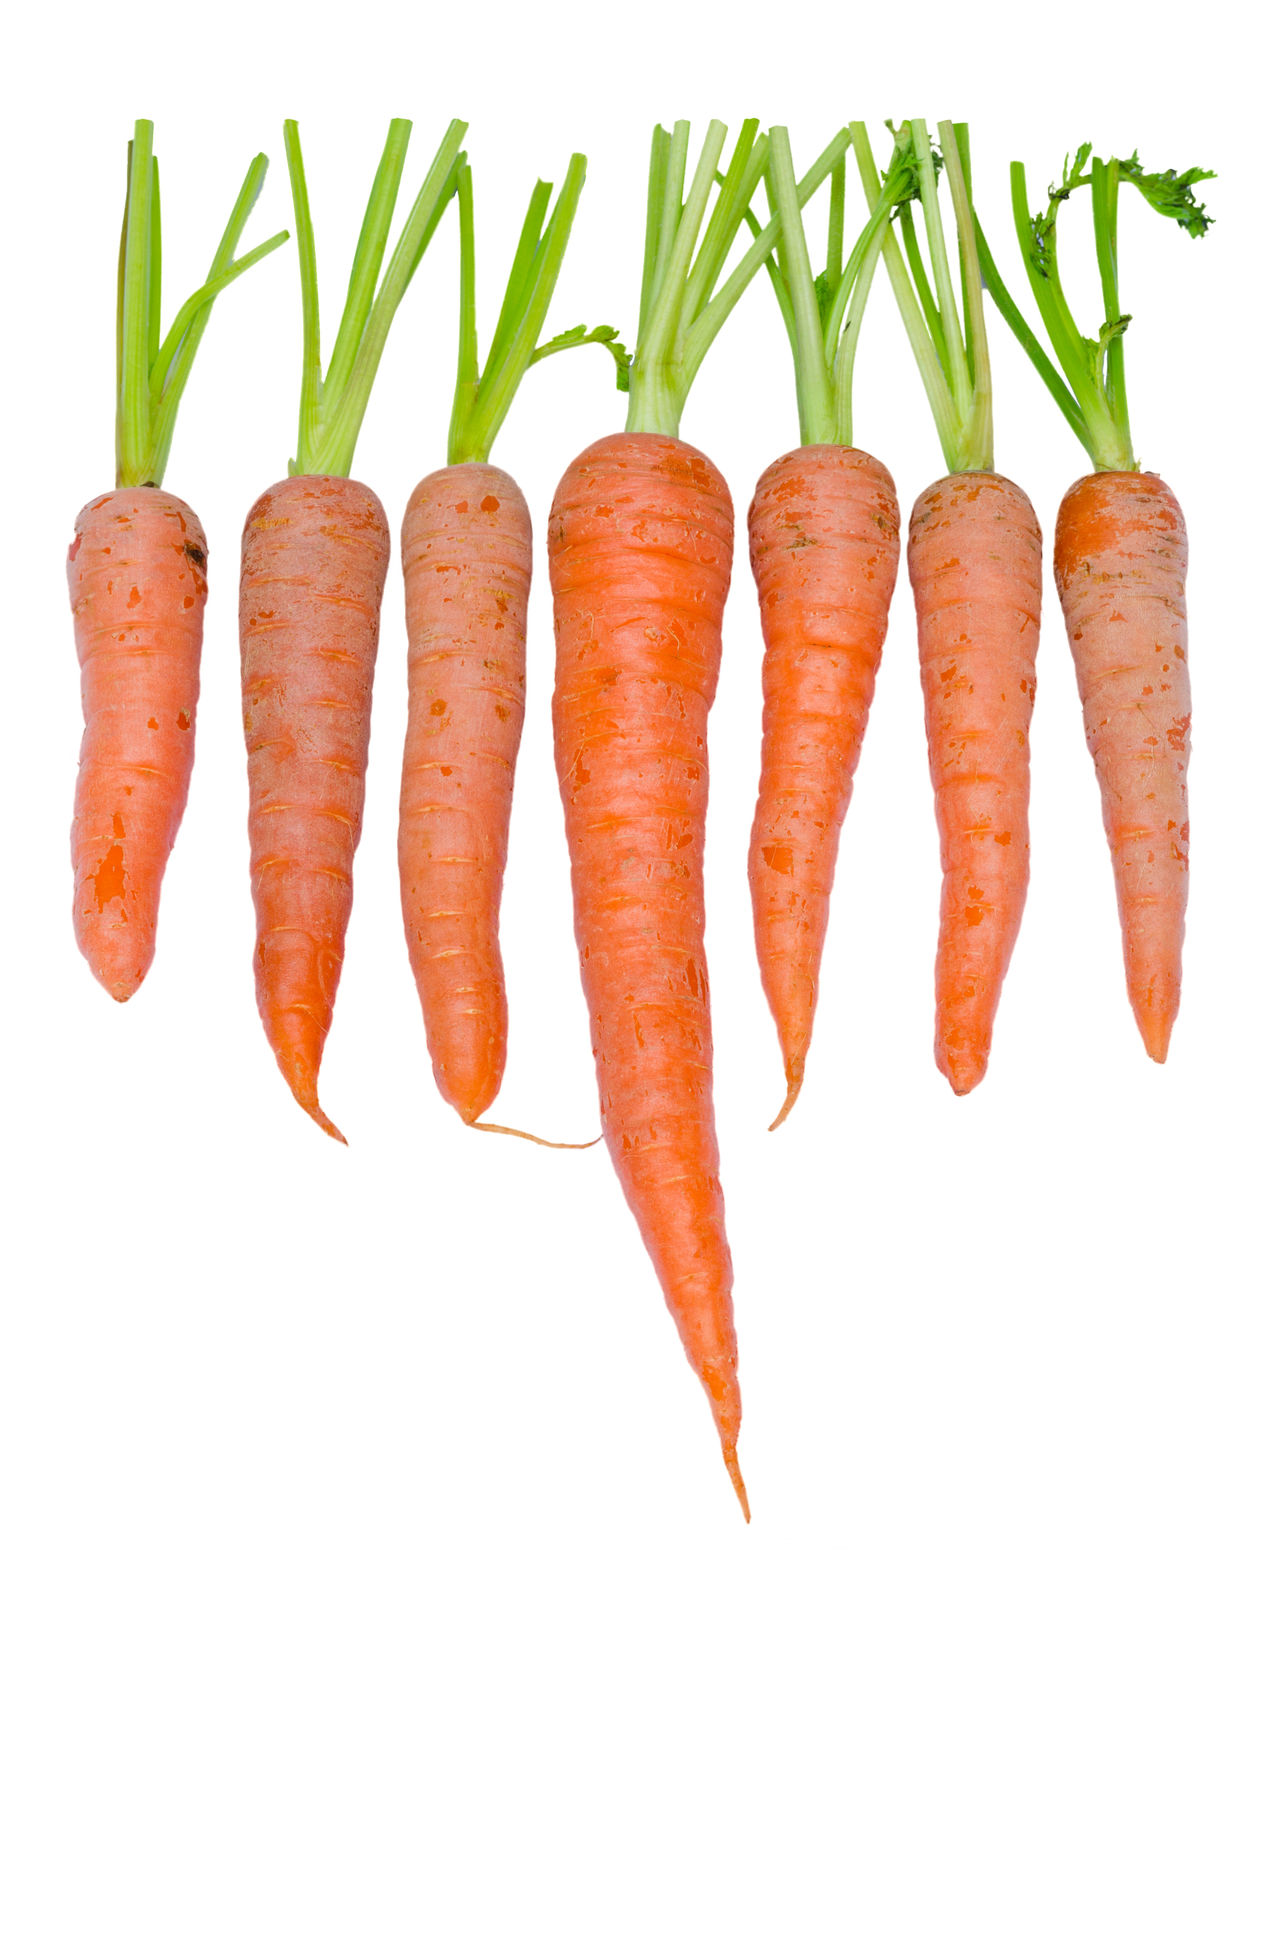 fresh carrots in a row isolated on white background Beta Carotene Carrot Close-up Dietfood Falcarinol Healthy Eating In A Row Isolated White Background Natural No People Nutrition Orange Color Raw Red Ripe Root Salad Top View Tuber Veganfood Vegetable Vegetarian Vitamin